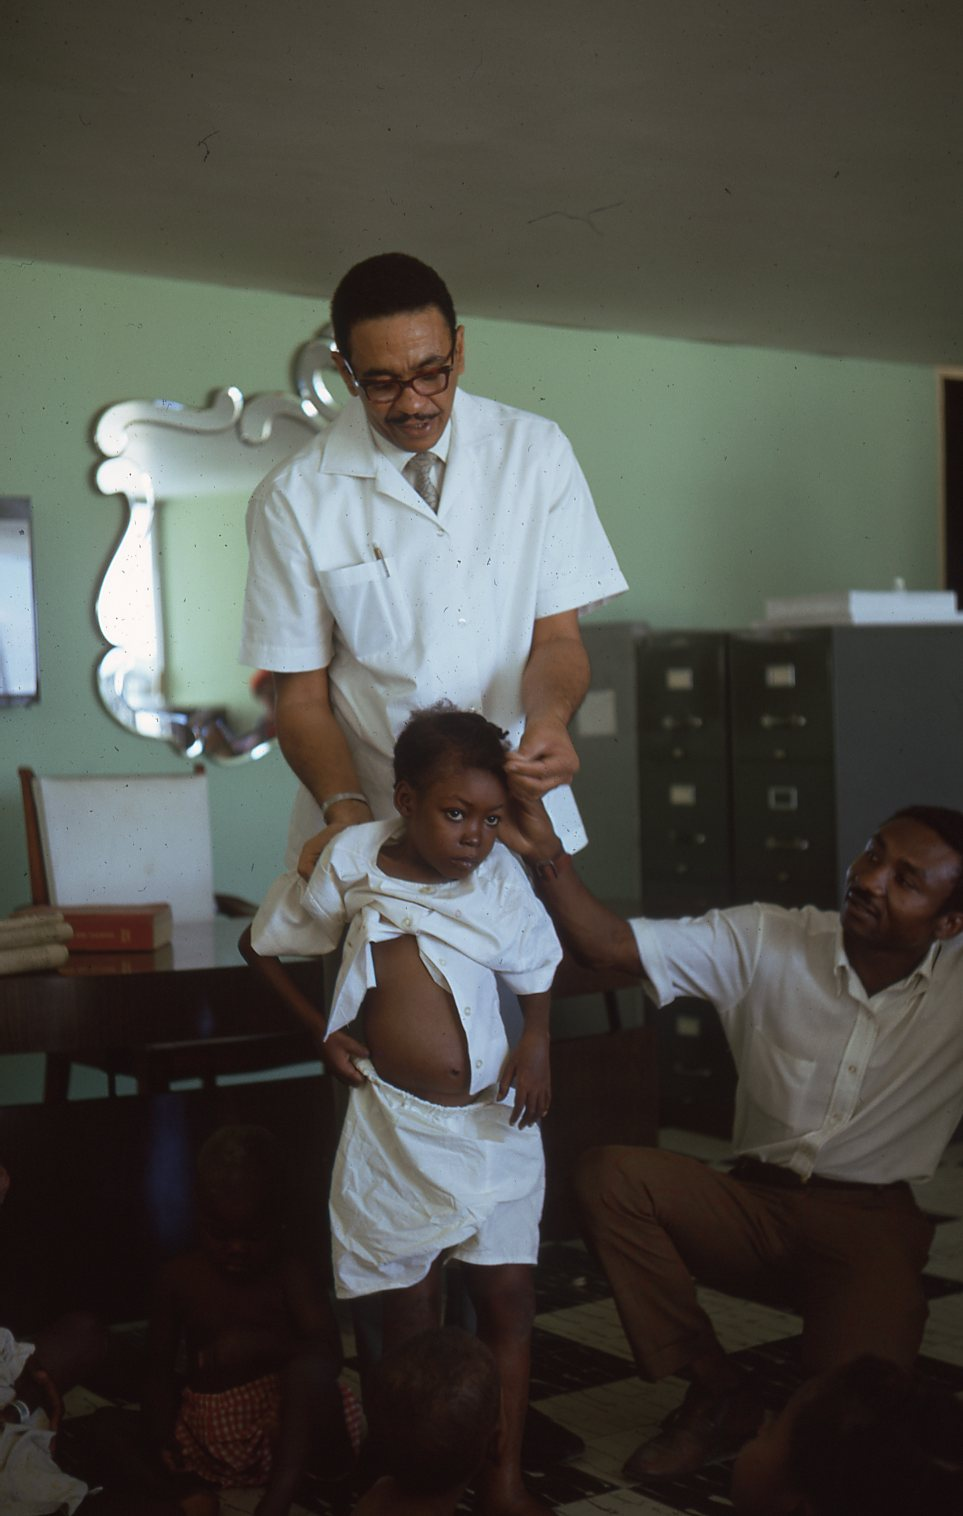 Napo assists Dr Lionel Theard with a patient at Grace.